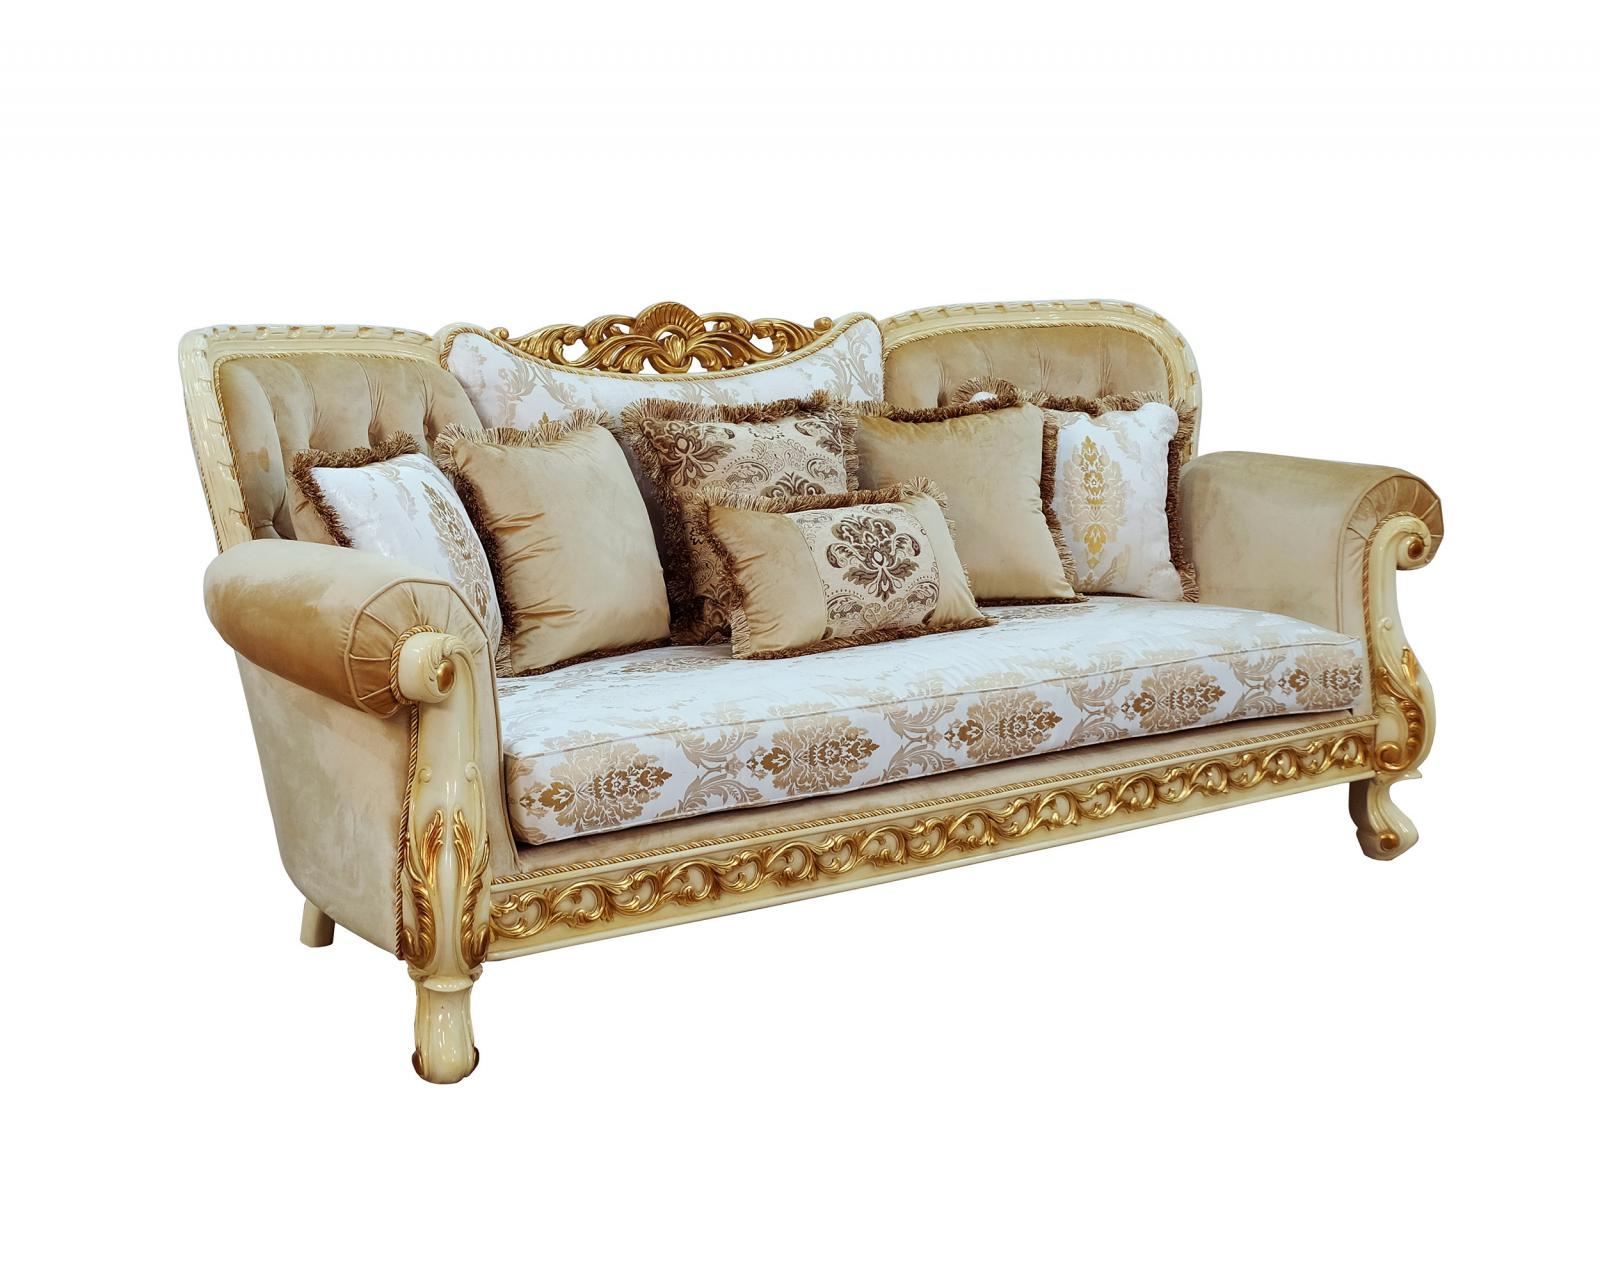 Classic  Traditional Gold  Sand  Off-White Wood  Solid Hardwood and Fabric Sofa EUROPEAN FURNITURE 40015-S